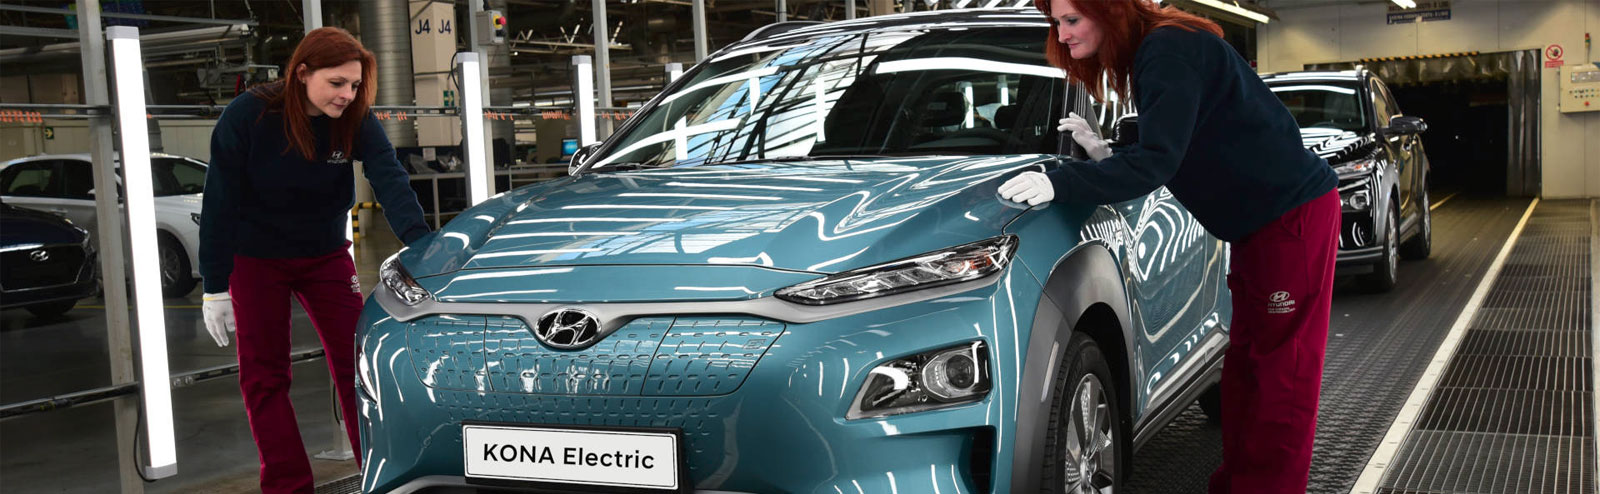 Hyundai will start producing the Kona Electric in Europe, tripling its availability in the local market